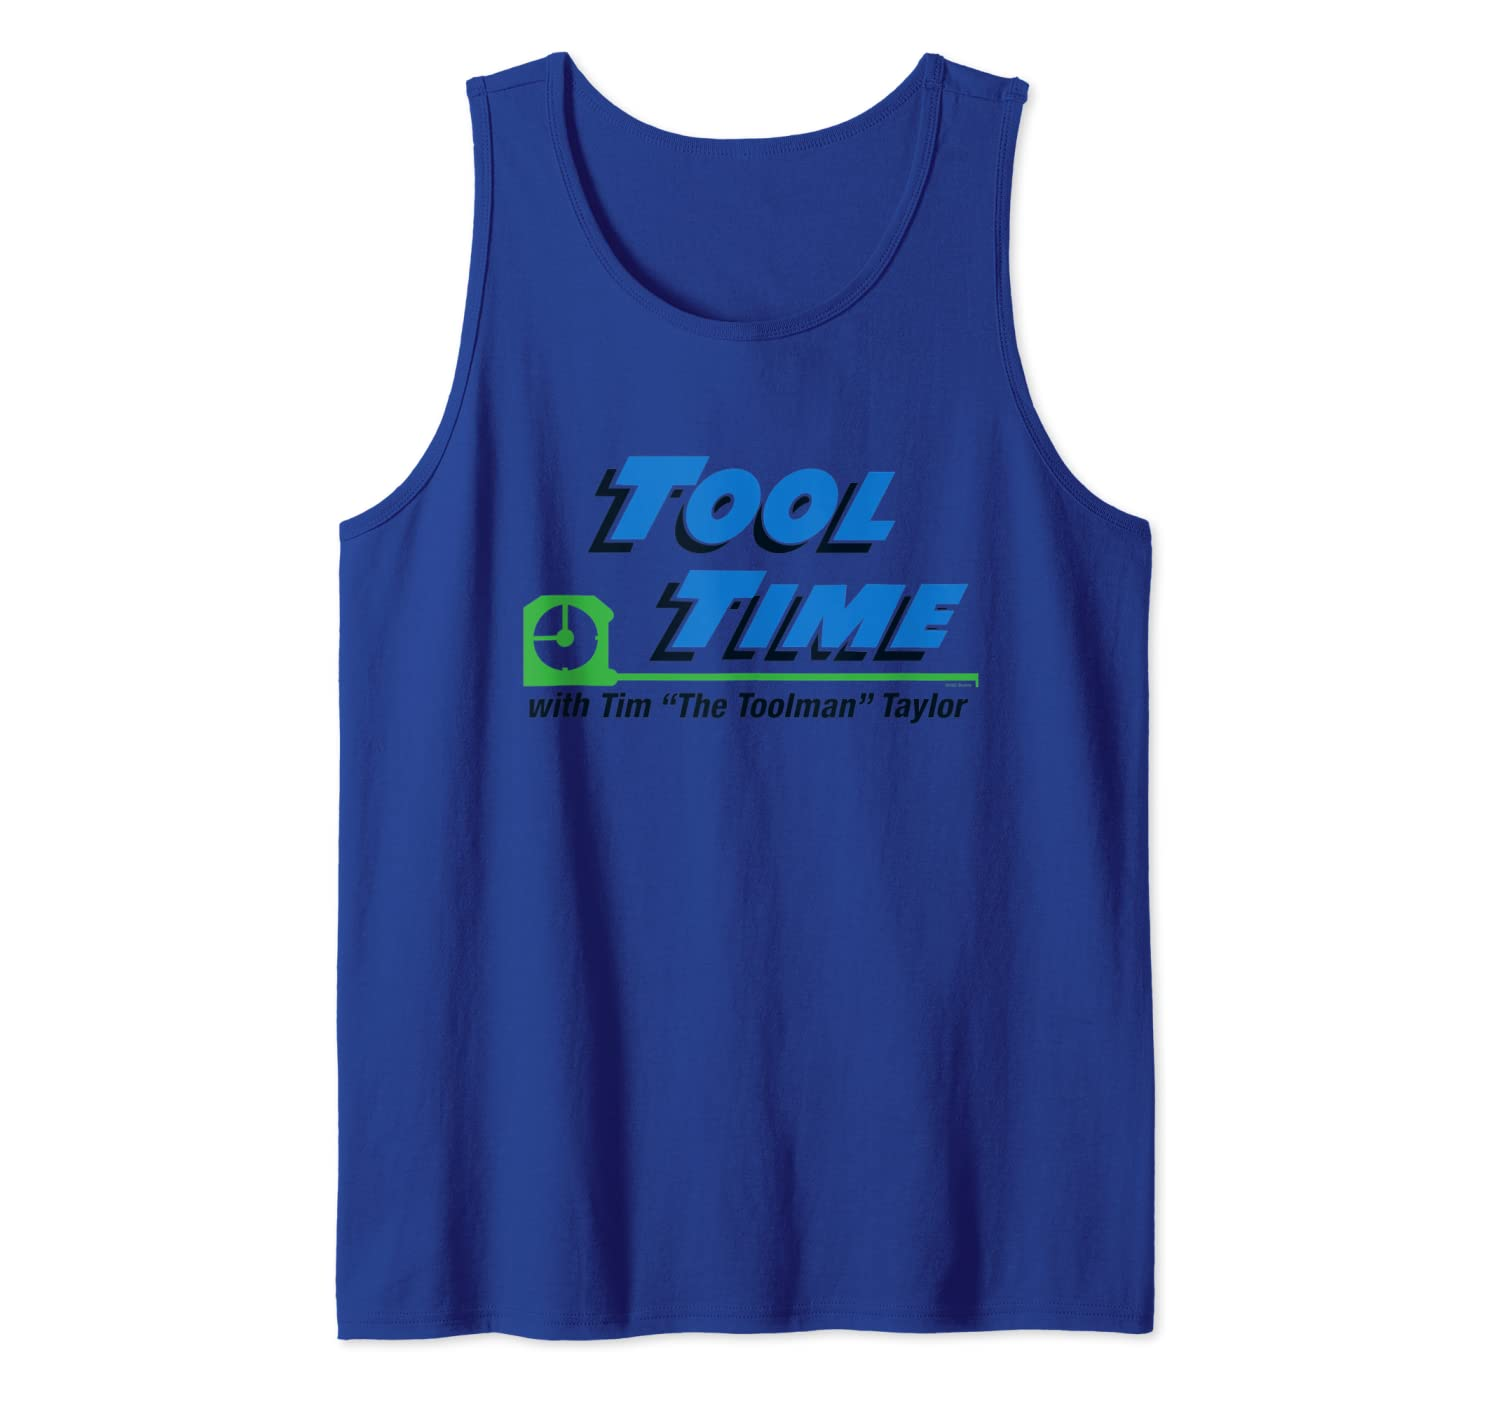 Home Improvement Tool Time with Tim Tank Top